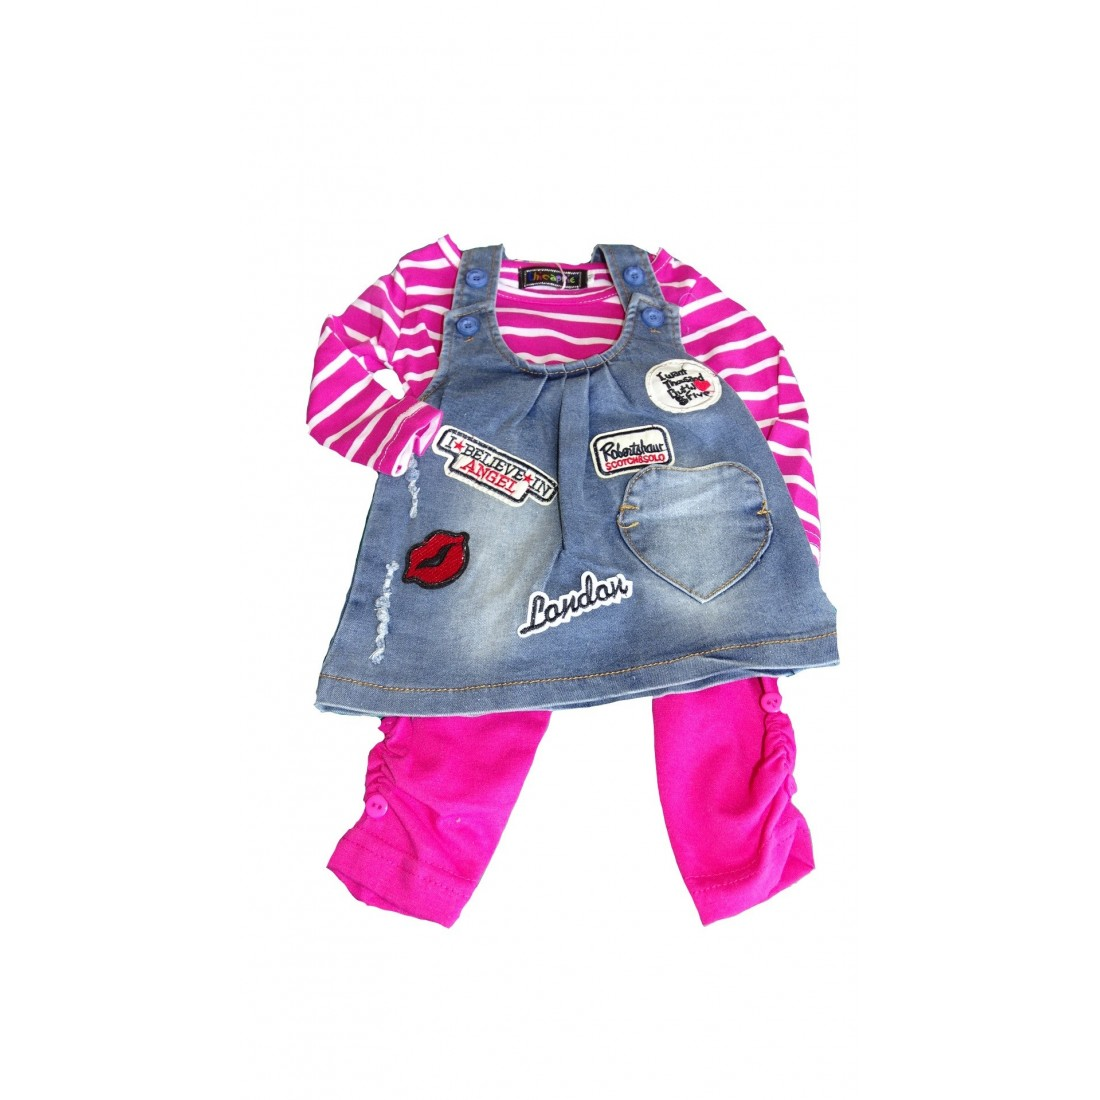 Ensemble fille robe jeans rock and plage